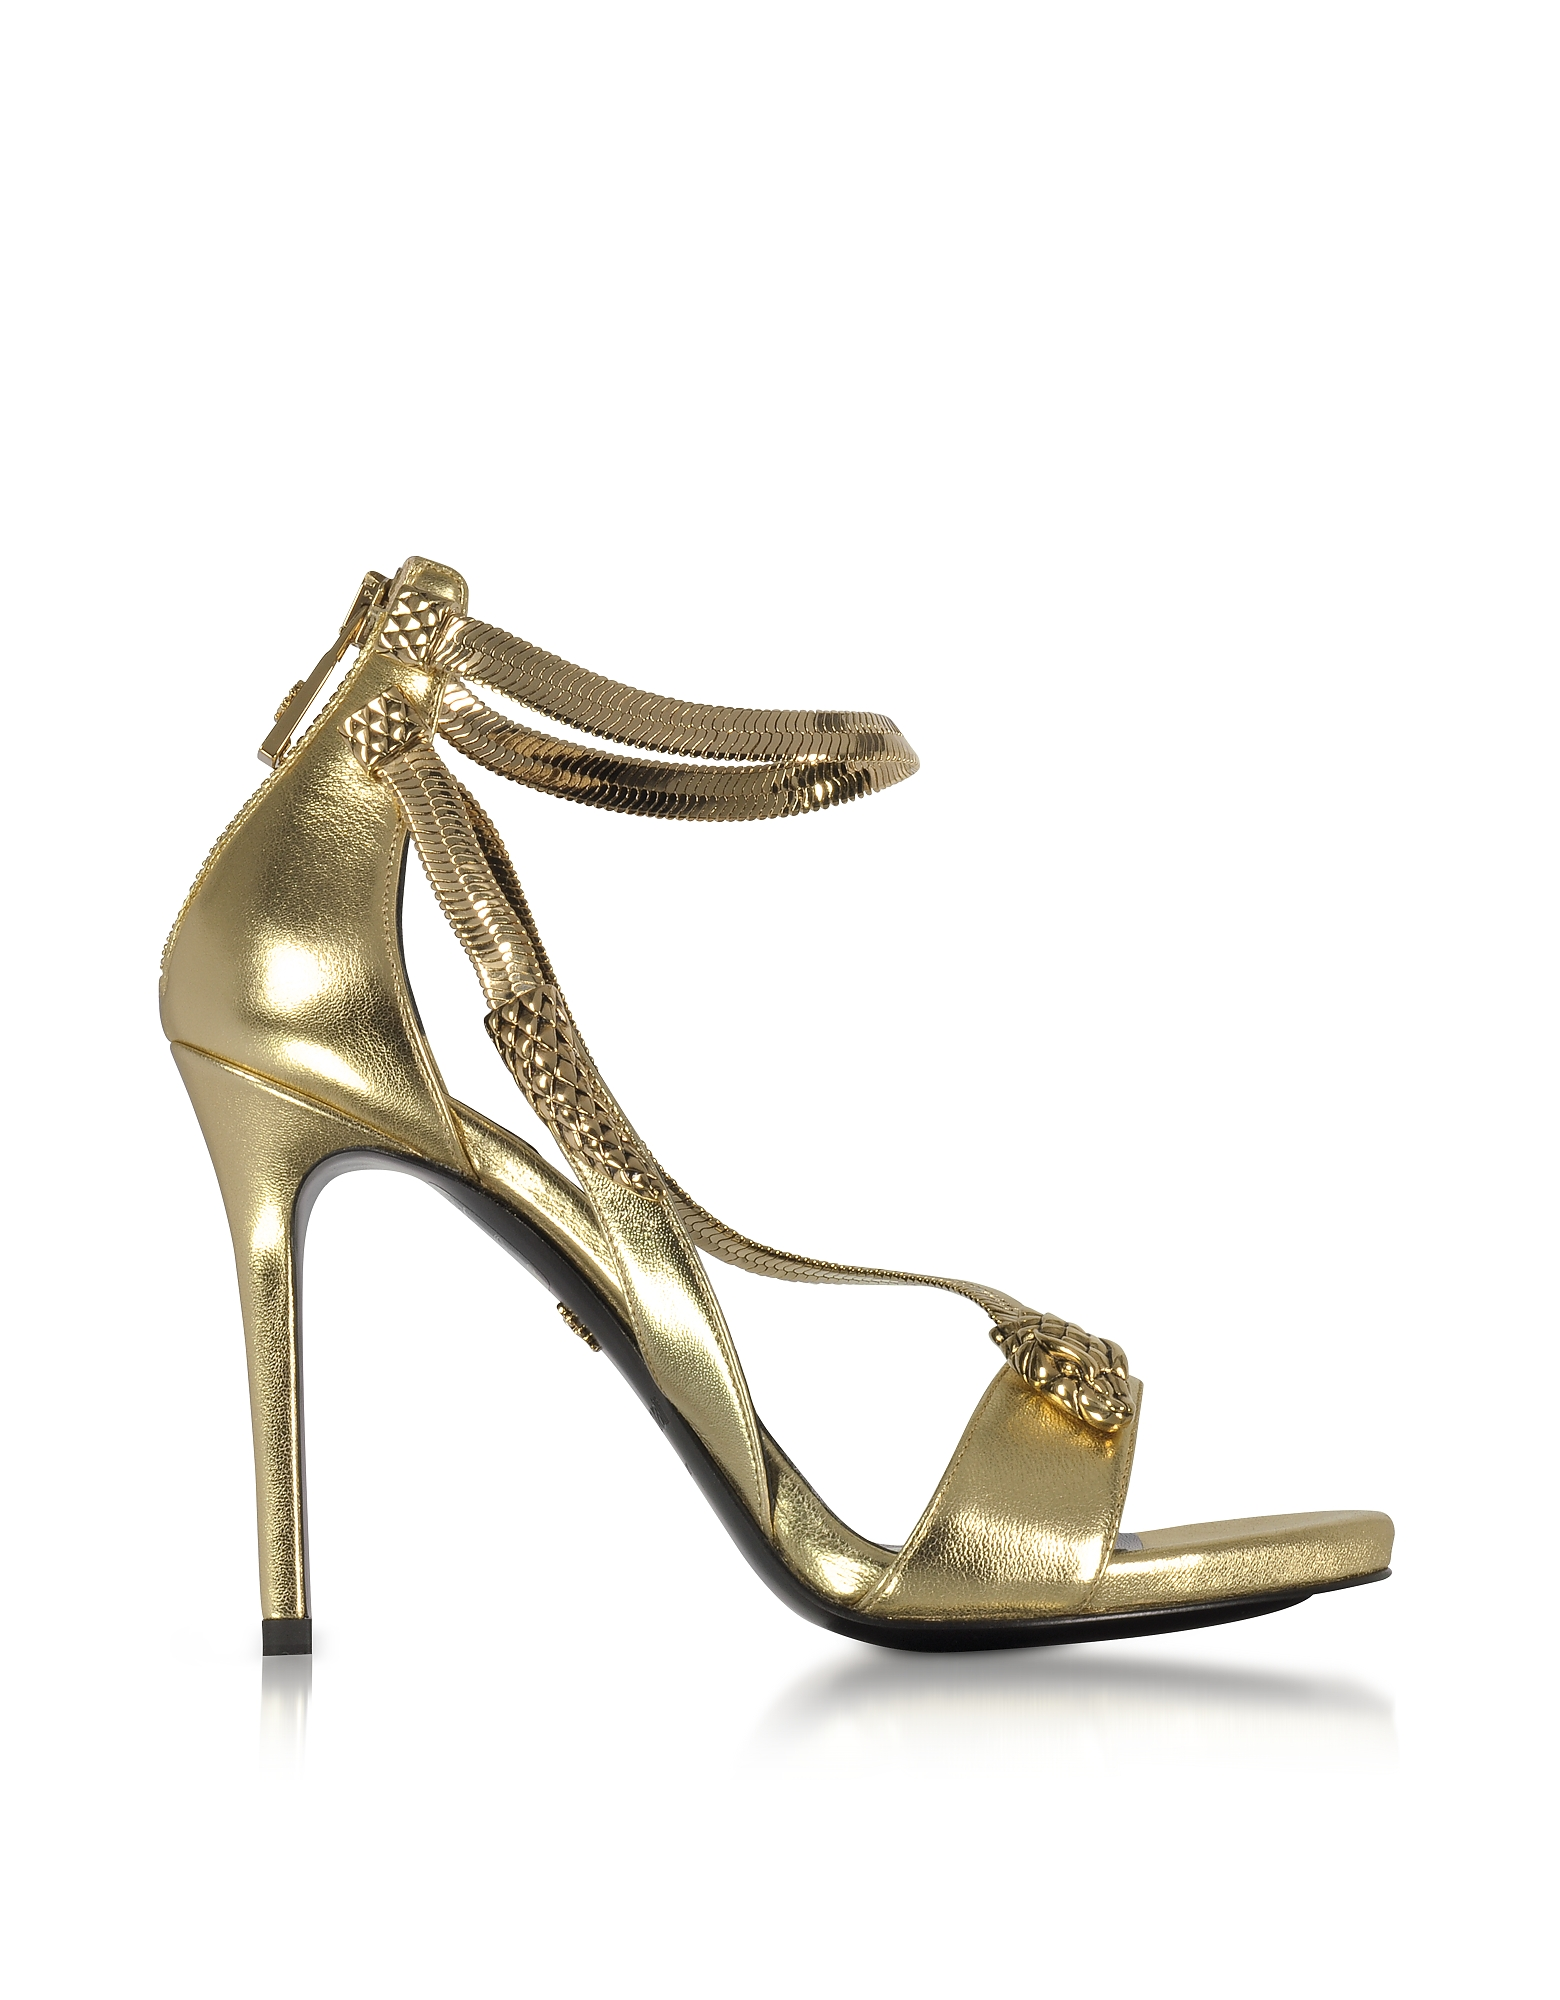 Roberto Cavalli Shoes, Golden Laminated Leather High Heel Snake Sandals